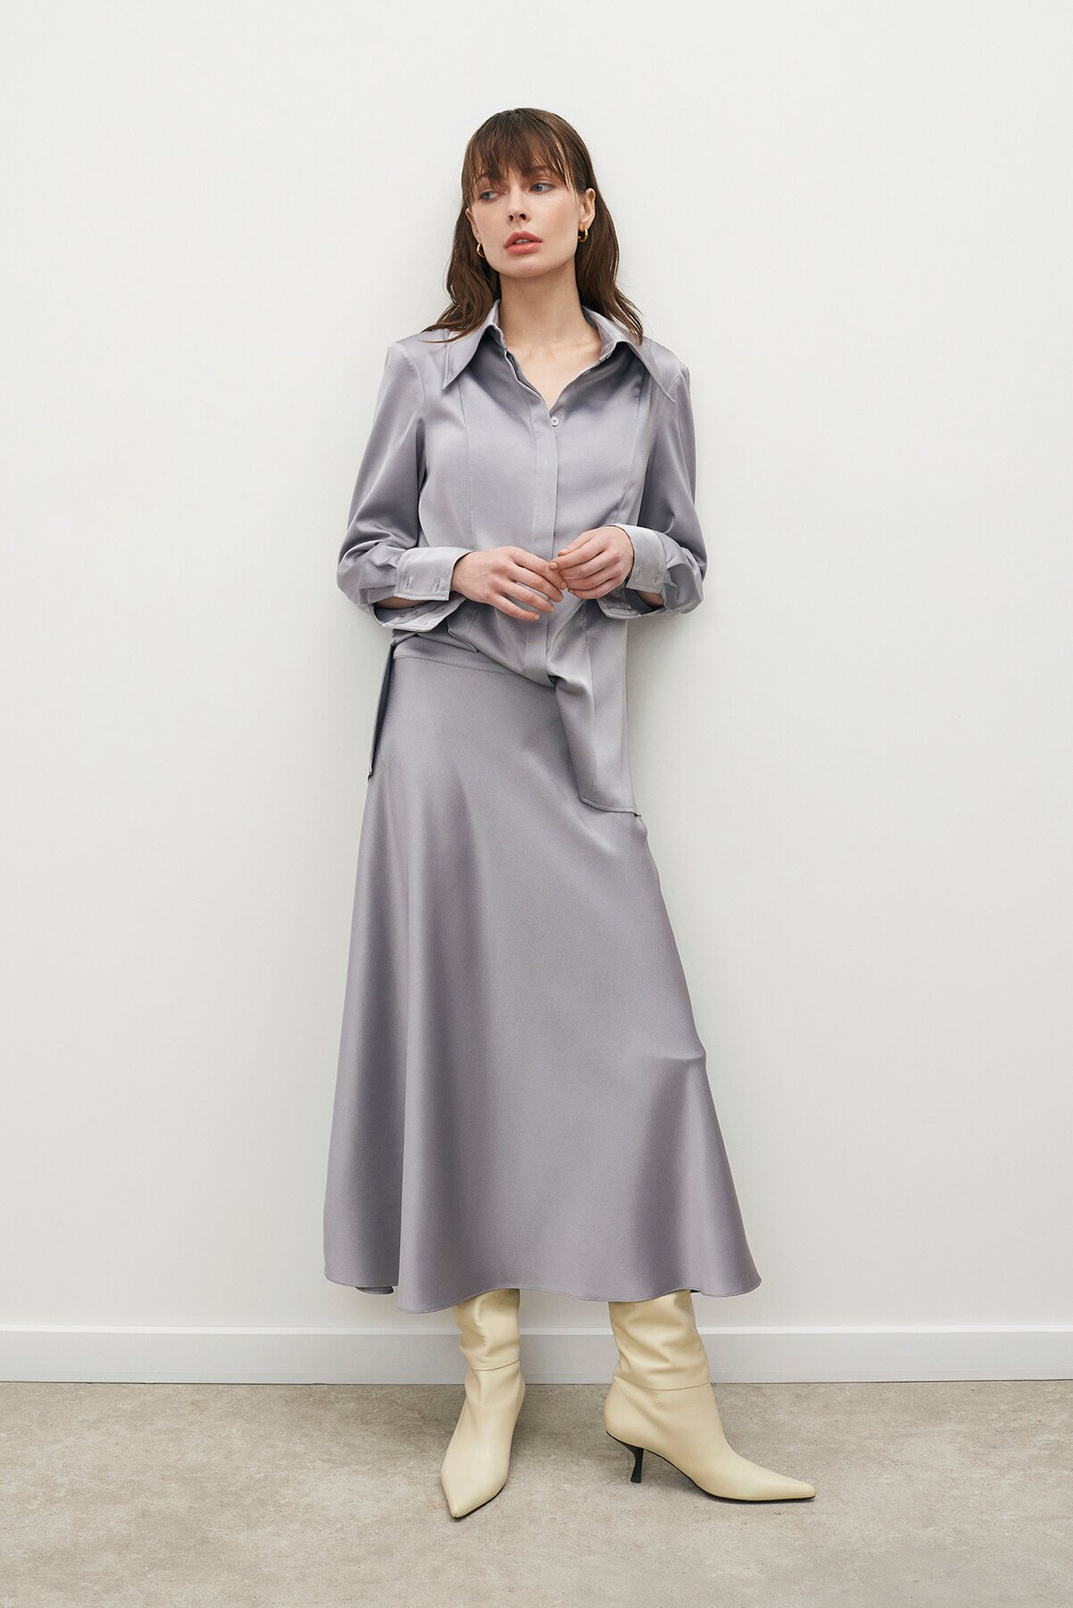 Satin shirt, Light gray, L